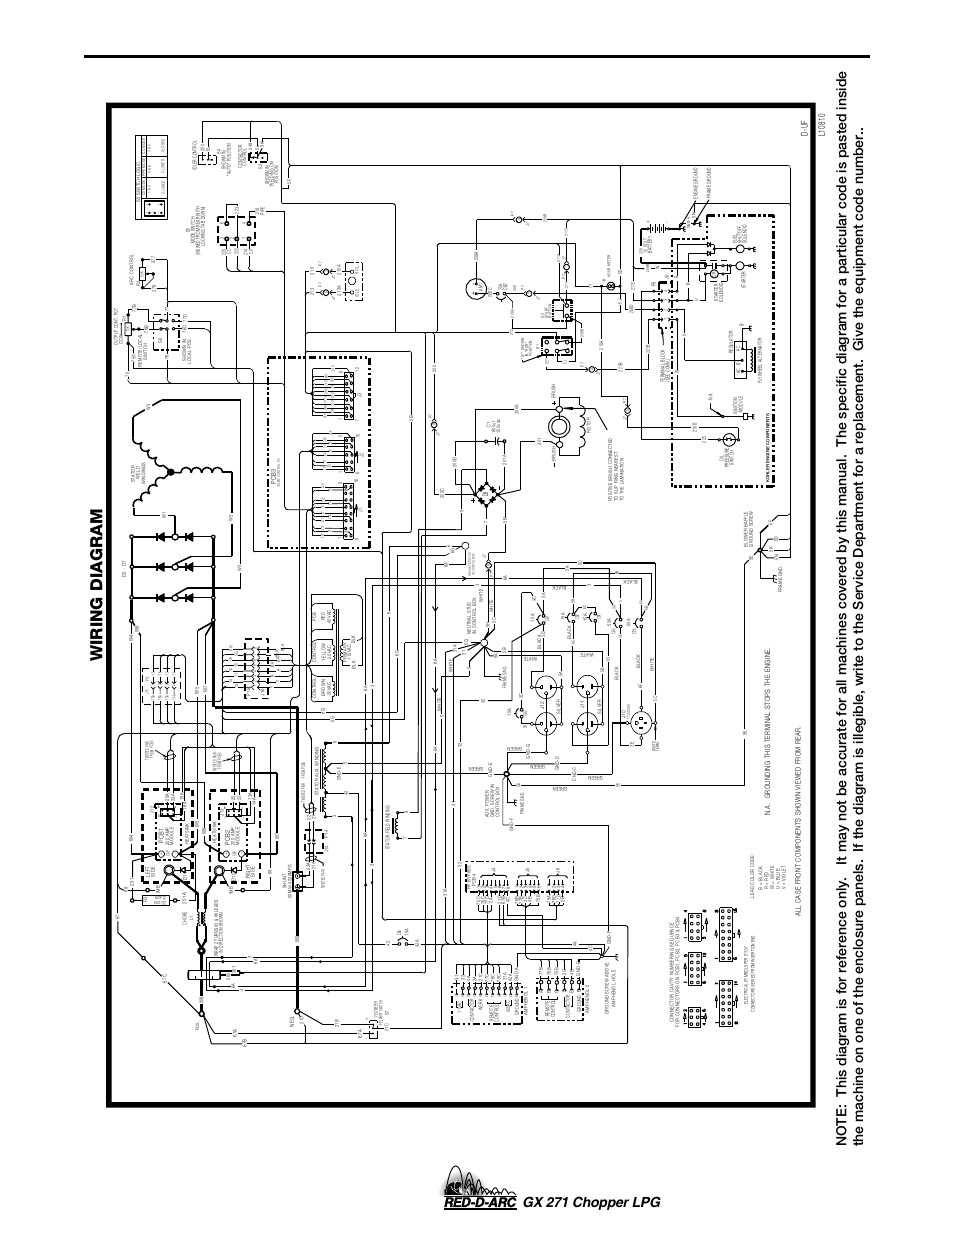 lincoln electric im635 red d arc gx 271chopper lpg page44 xo vision wiring diagram xo vision xd103 wiring harness at nearapp.co